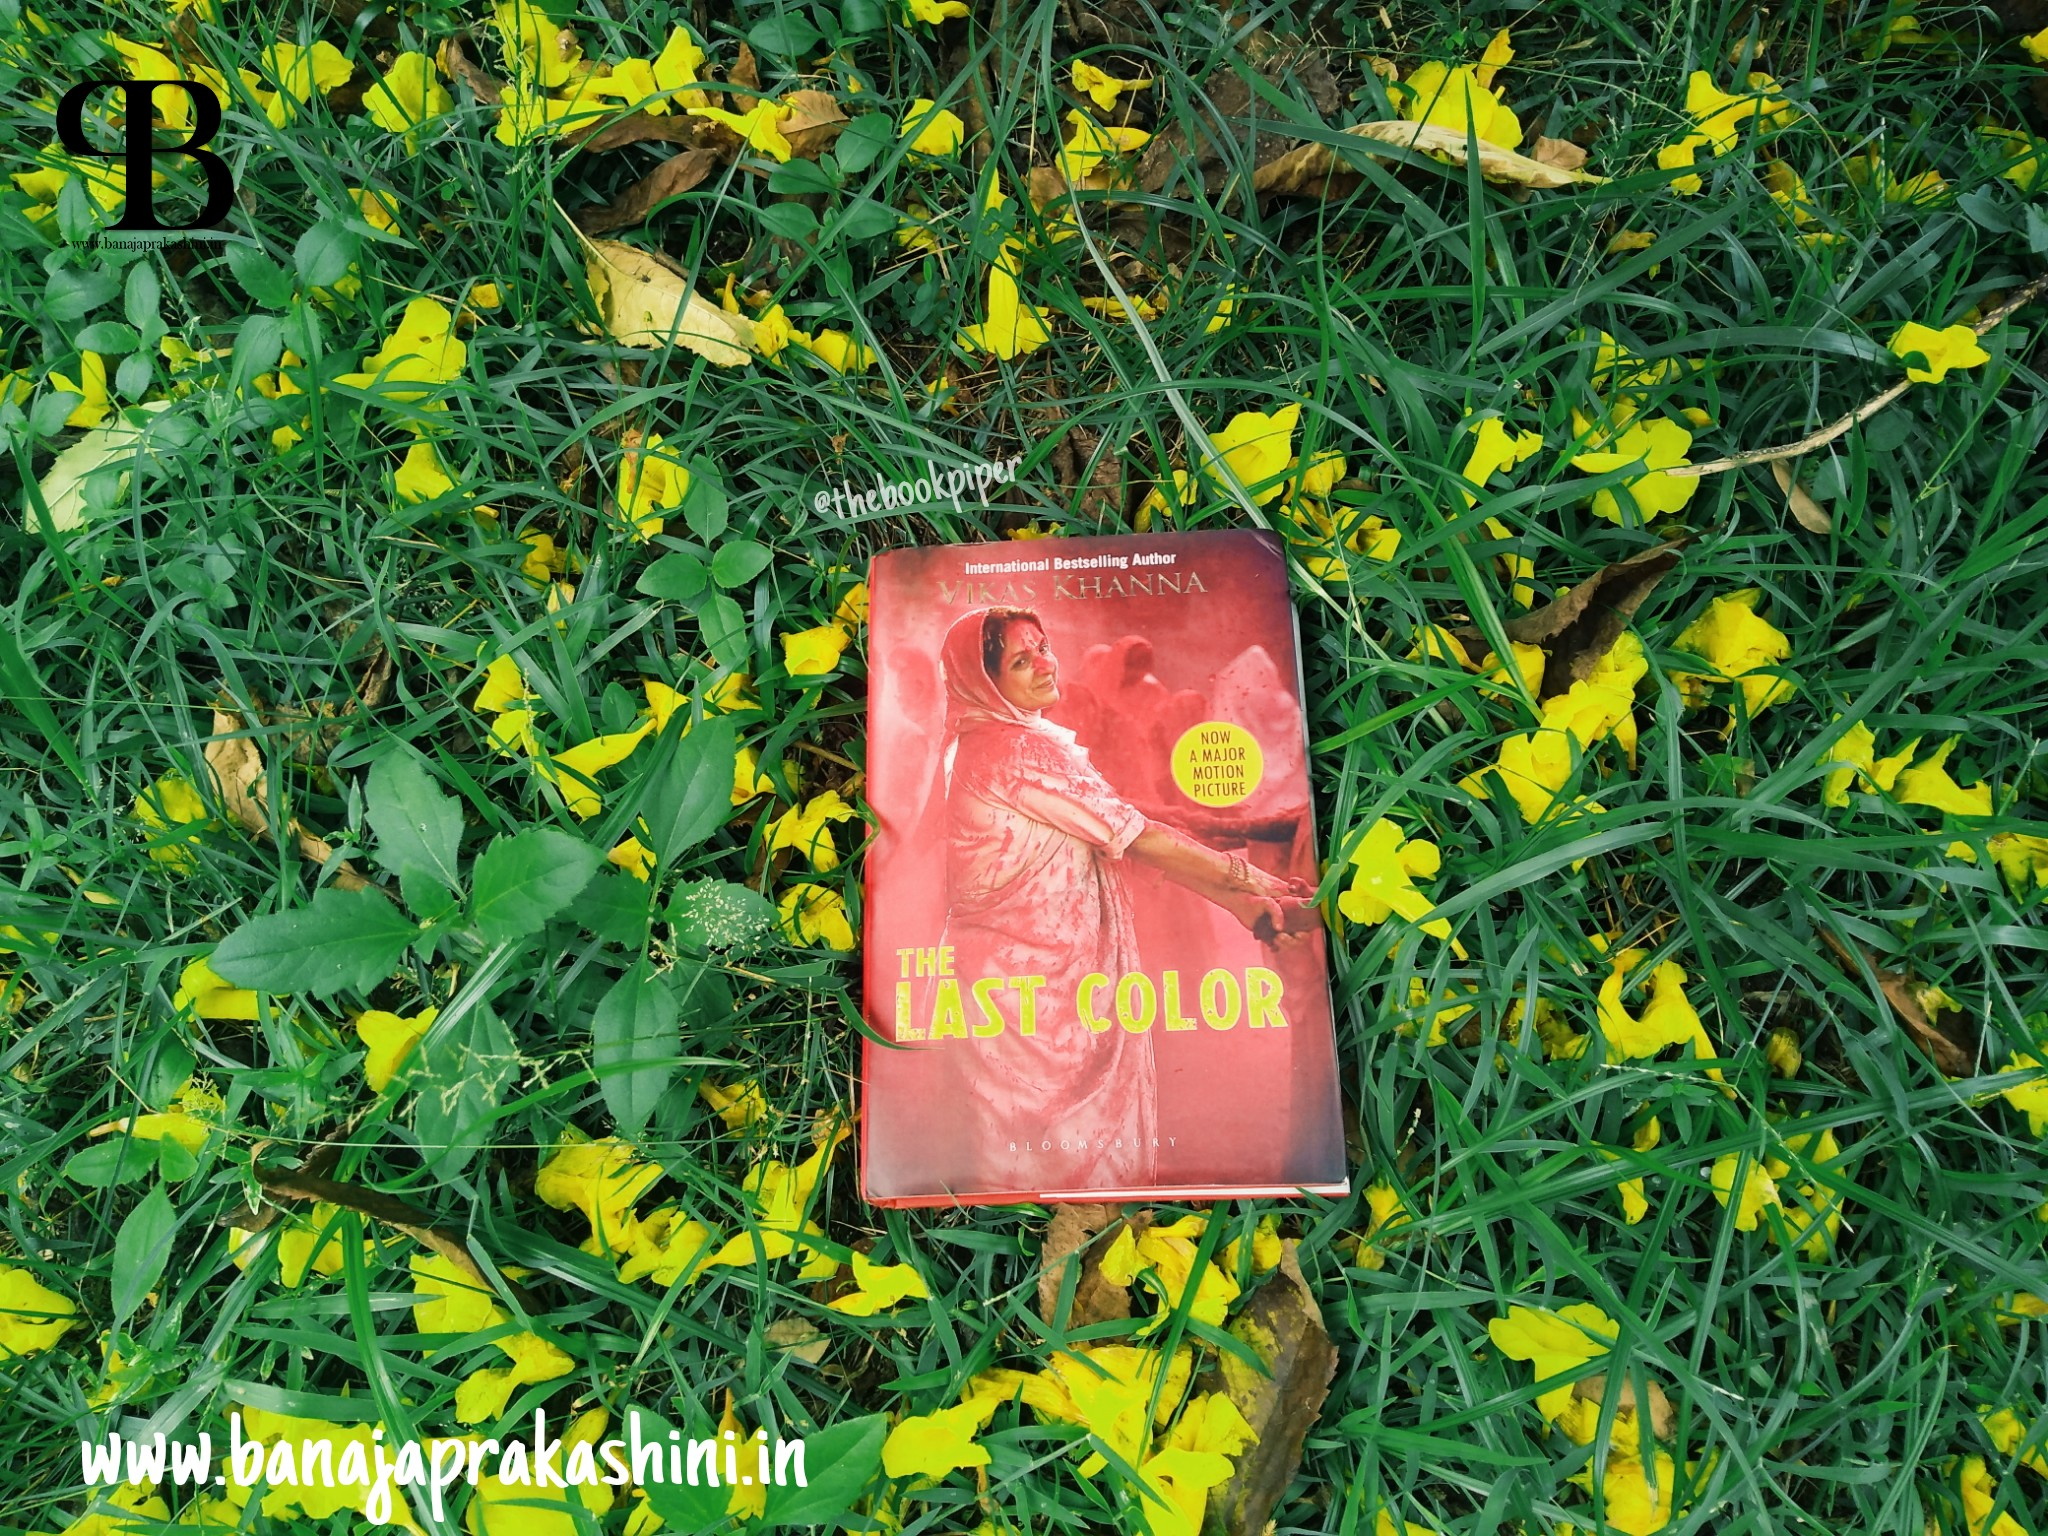 Review Pen: The Last Color by Vikas Khanna